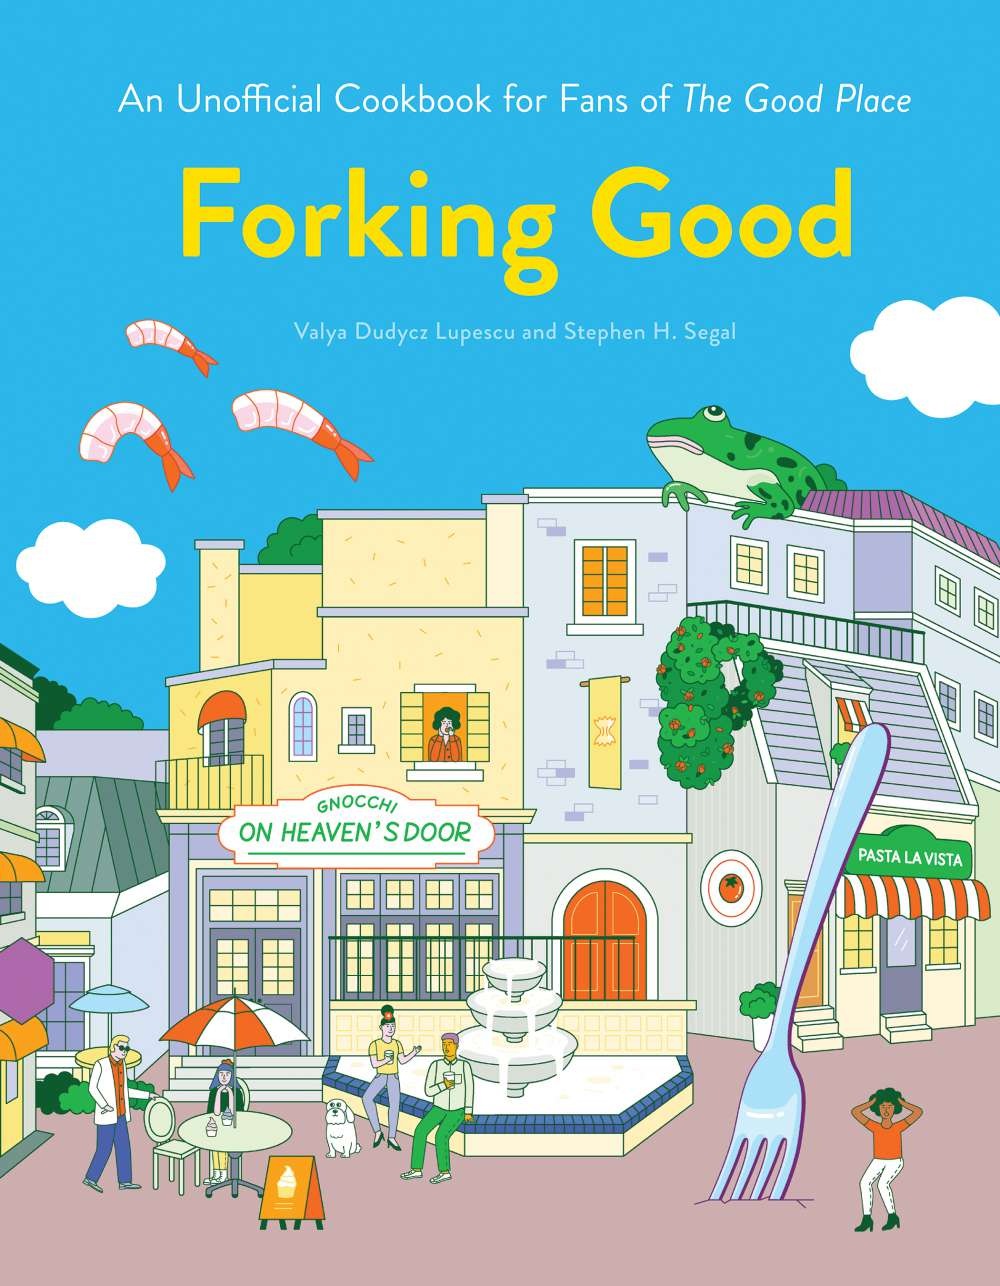 Forking Good: A Cookbook Inspired by The Good Place' by Valya Dudycz Lupescu and Stephen H. Segal